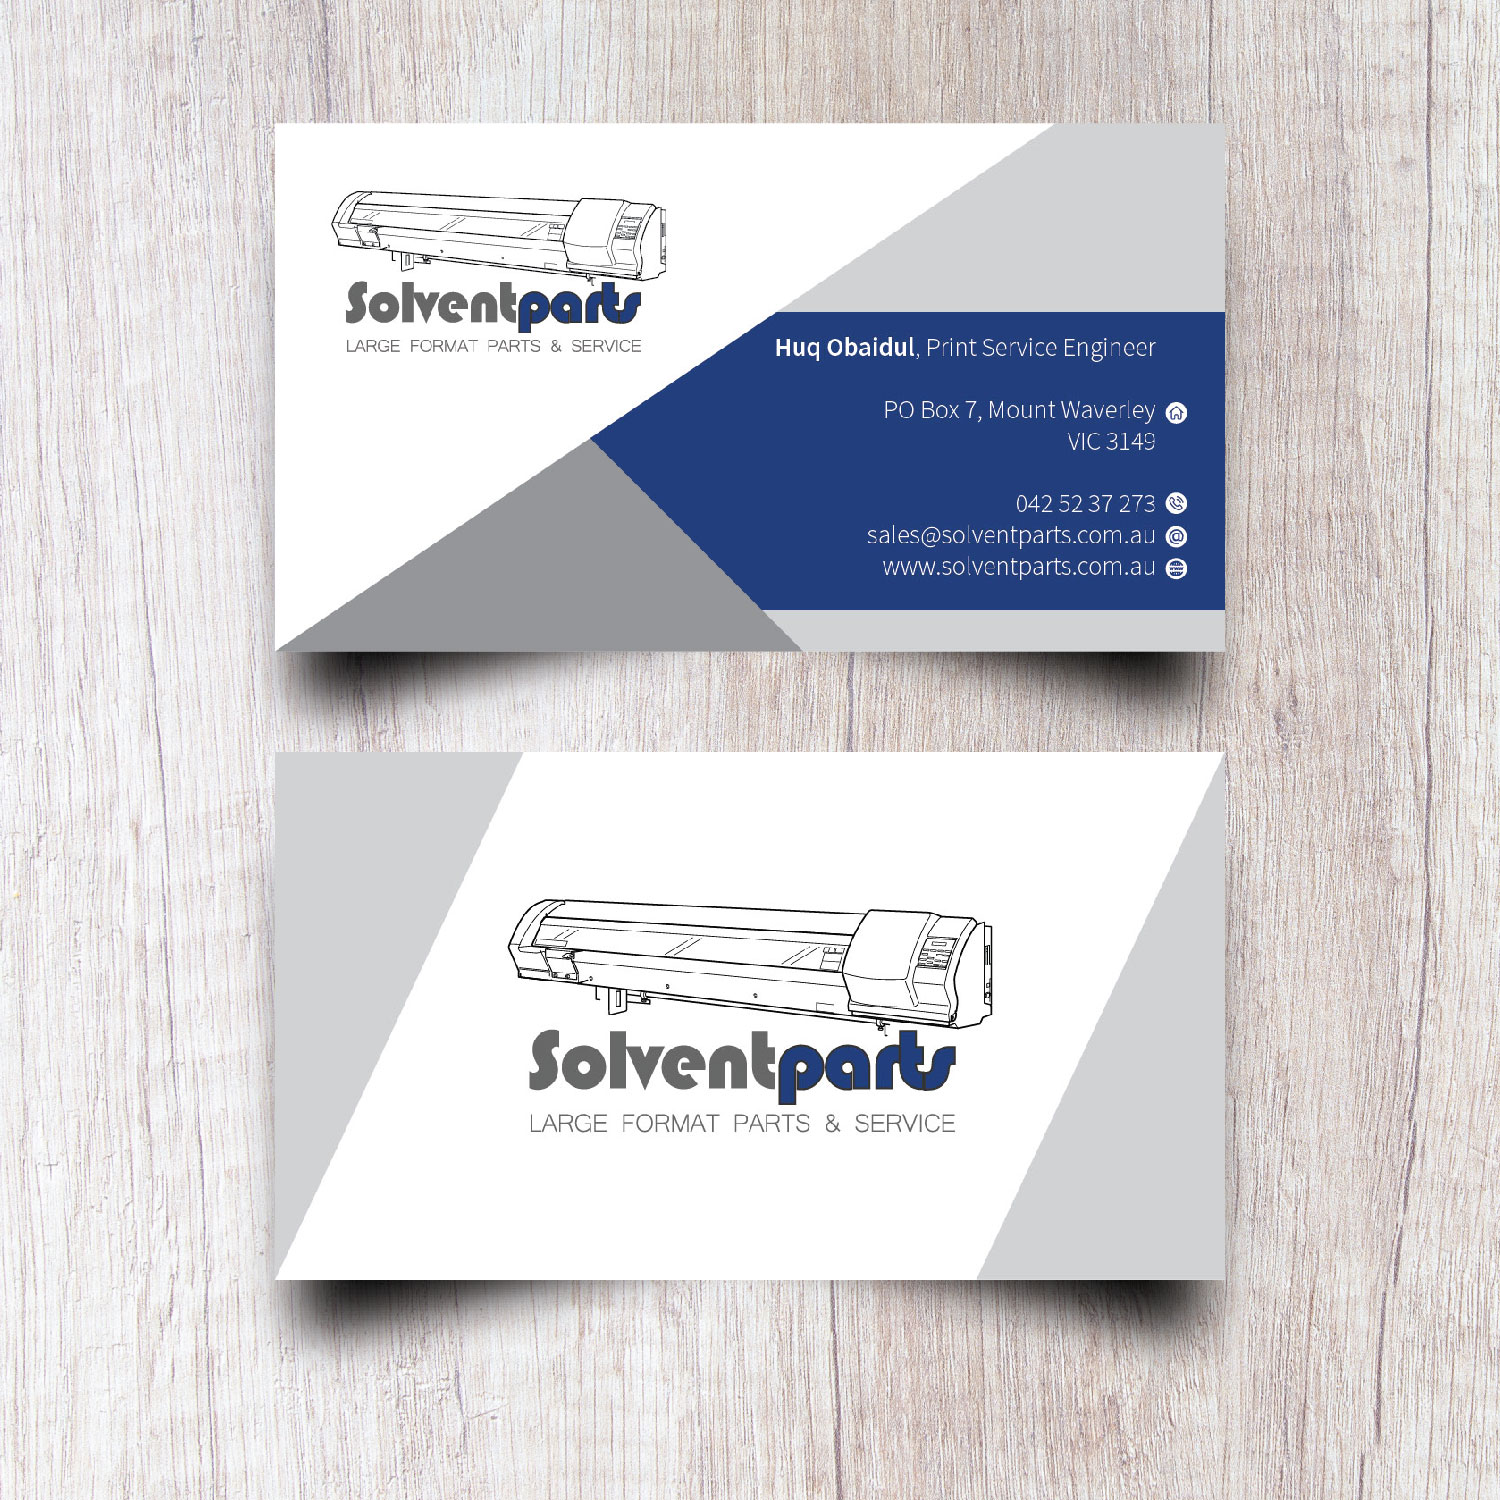 Personable conservative business business card design for business card design by ivan84 for solventparts design 14725736 reheart Image collections